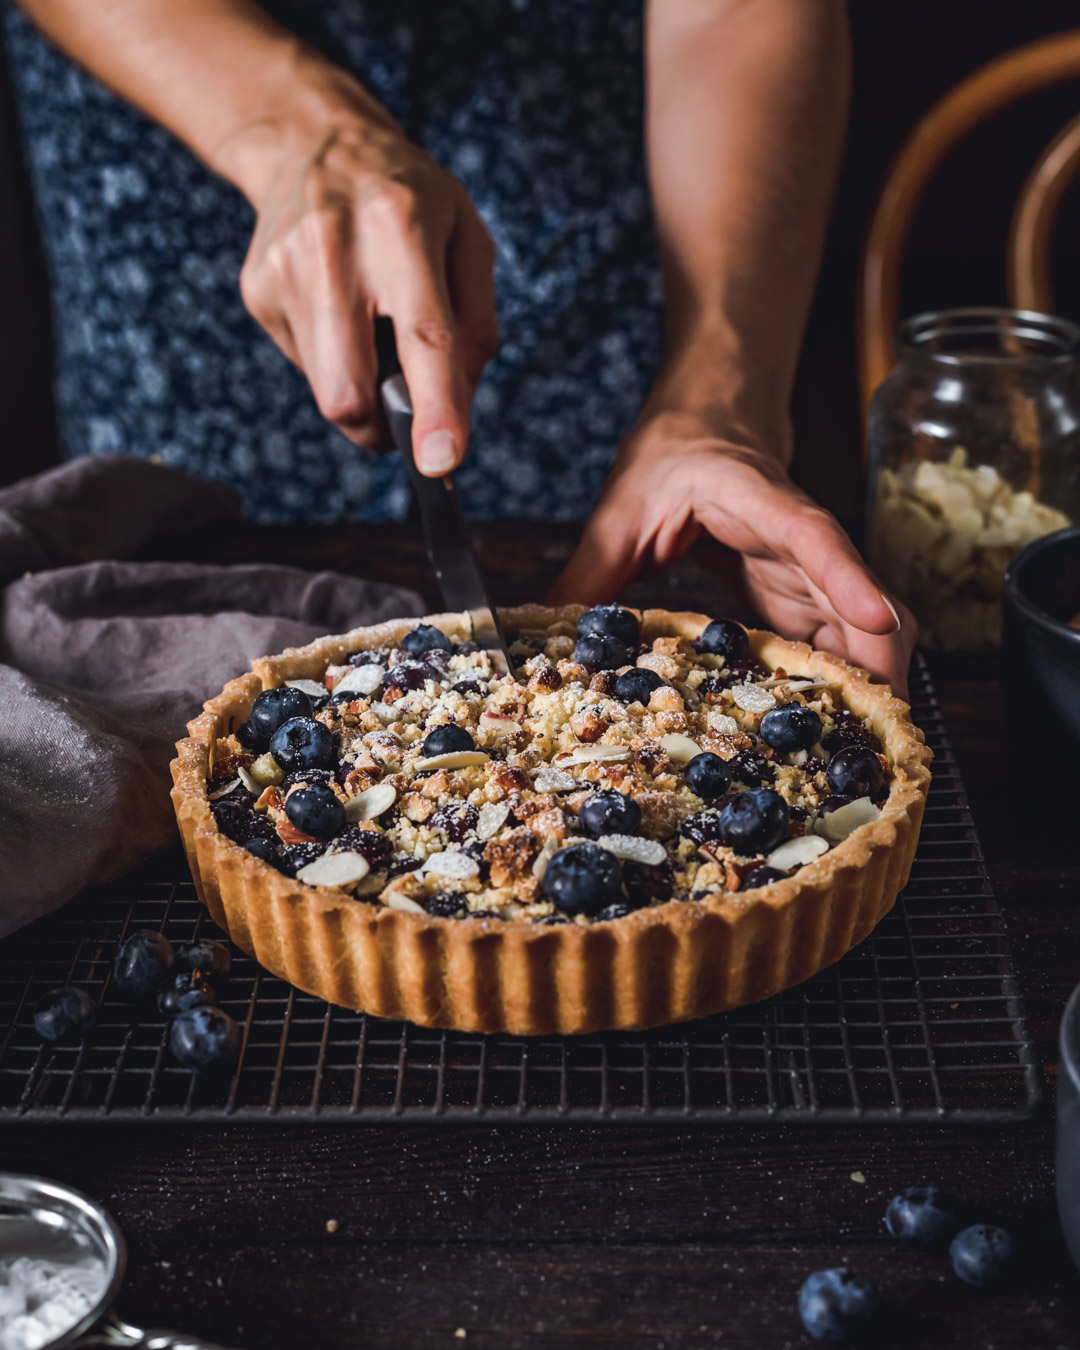 Vegan Tart with Crumble